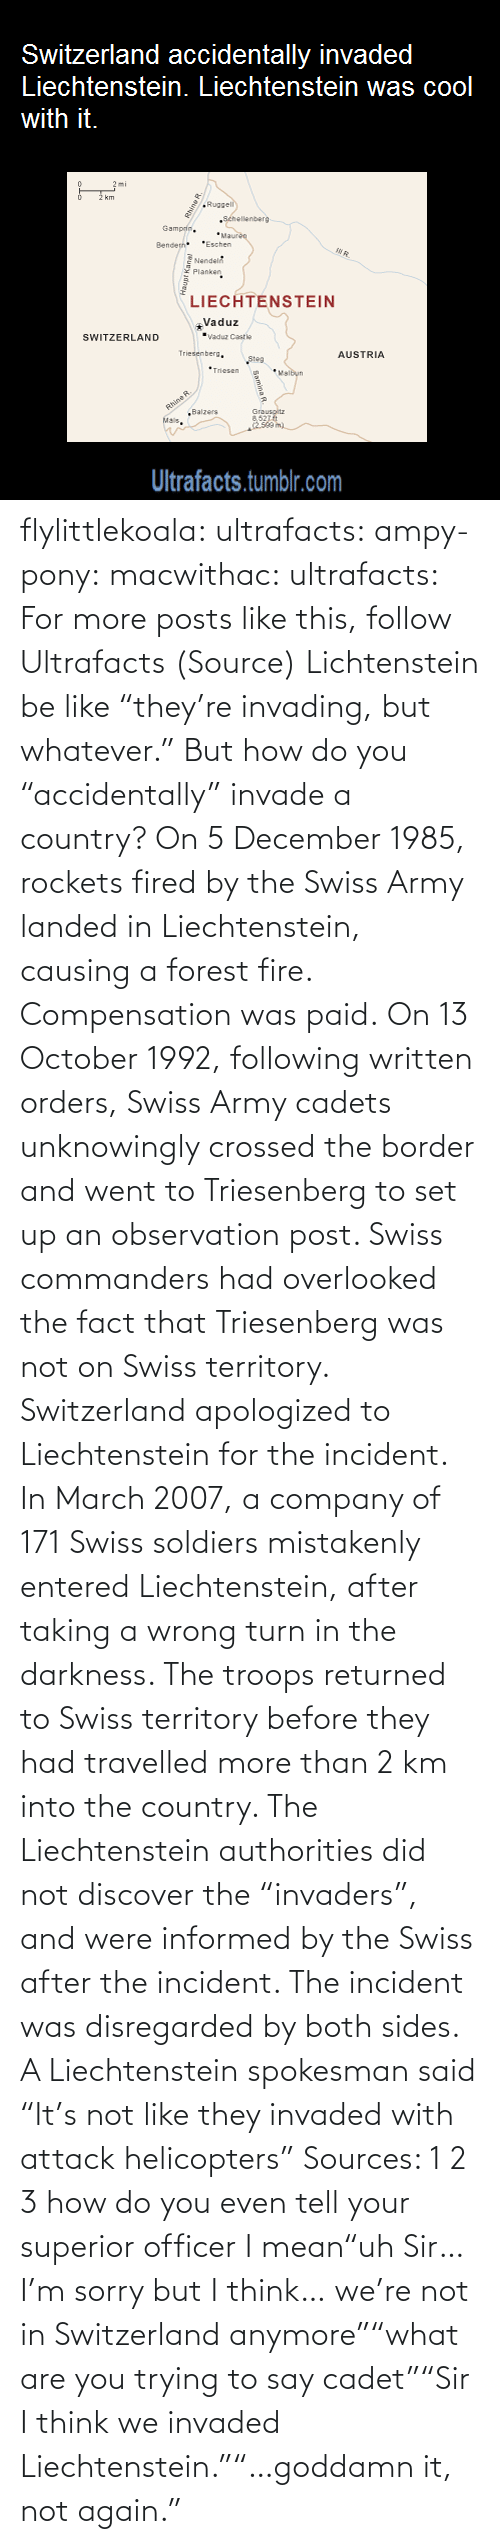 """But Whatever: Switzerland accidentally invaded  Liechtenstein. Liechtenstein was cool  with it.  km  Ruggell  Séhellenberg  Gampfe.  *Maure  *Eschen  Bendern  Nendel  Planken  LIECHTENSTEIN  Vaduz  """"Vaduz Castie  SWITZERLAND  Triesenbers.  AUSTRIA  Steg  *Triesen  *Malbun  Rhine R.  """"Balzers  Mals.  Grausoltz  8,521  2.500 m)  Ultrafacts.tumblr.com  Haupt Kanal  Samina R flylittlekoala:  ultrafacts:  ampy-pony:  macwithac:  ultrafacts:  For more posts like this, follow Ultrafacts (Source)  Lichtenstein be like """"they're invading, but whatever.""""  But how do you """"accidentally"""" invade a country?  On 5 December 1985, rockets fired by the Swiss Army landed in Liechtenstein, causing a forest fire. Compensation was paid. On 13 October 1992, following written orders, Swiss Army cadets unknowingly crossed the border and went to Triesenberg to set up an observation post. Swiss commanders had overlooked the fact that Triesenberg was not on Swiss territory. Switzerland apologized to Liechtenstein for the incident. In March 2007, a company of 171 Swiss soldiers mistakenly entered Liechtenstein, after taking a wrong turn in the darkness. The troops returned to Swiss territory before they had travelled more than 2km into the country. The Liechtenstein authorities did not discover the """"invaders"""", and were informed by the Swiss after the incident. The incident was disregarded by both sides. A Liechtenstein spokesman said """"It's not like they invaded with attack helicopters"""" Sources: 1 2 3  how do you even tell your superior officer I mean""""uh Sir… I'm sorry but I think… we're not in Switzerland anymore""""""""what are you trying to say cadet""""""""Sir I think we invaded Liechtenstein.""""""""…goddamn it, not again."""""""